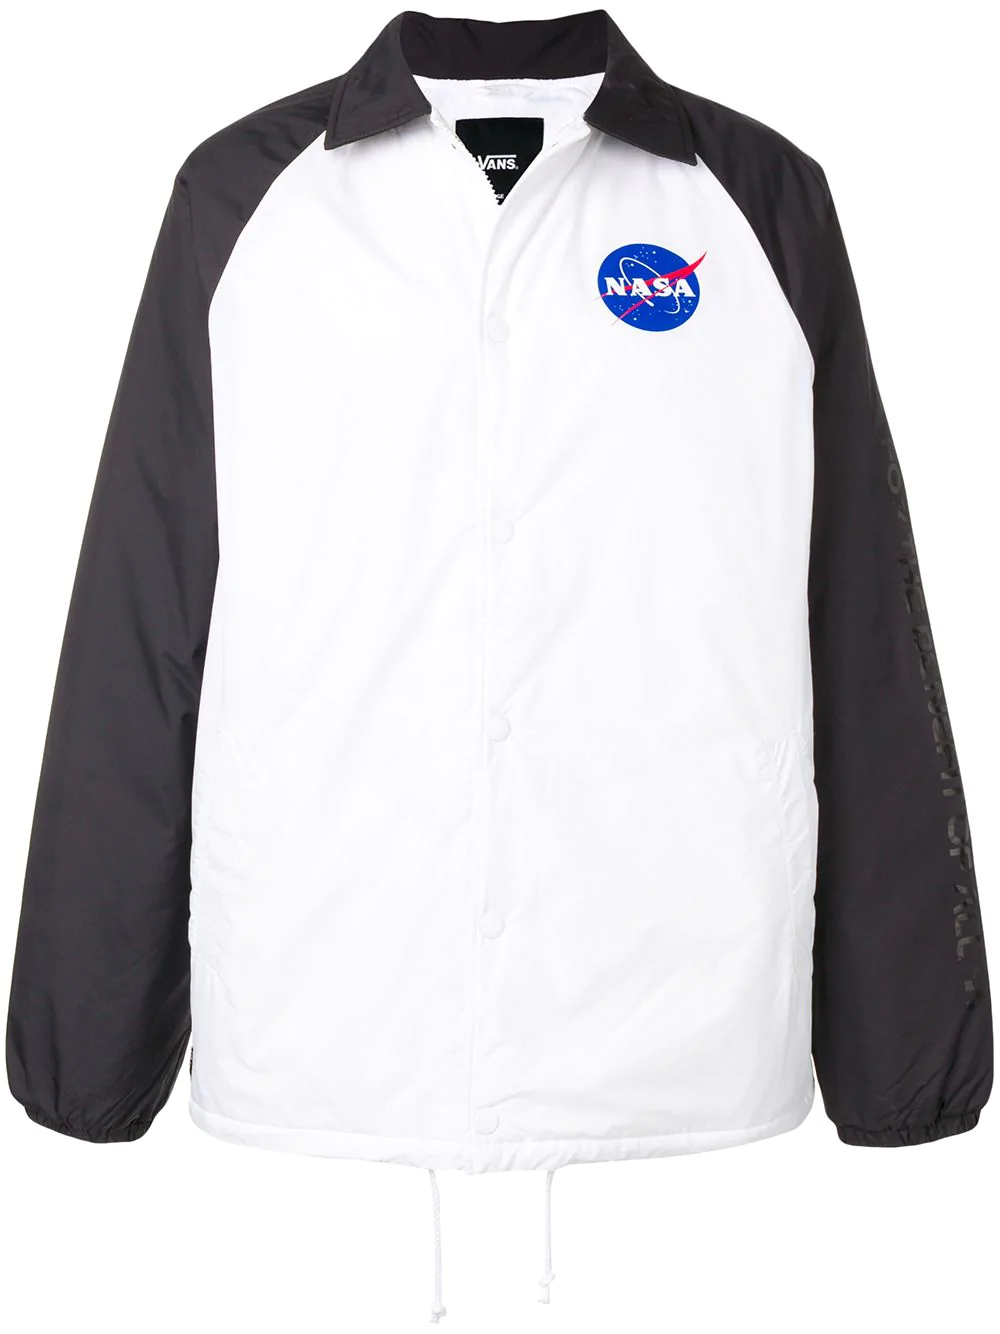 066d61aa85 Vans X Nasa Space Torrey Padded Jacket - White